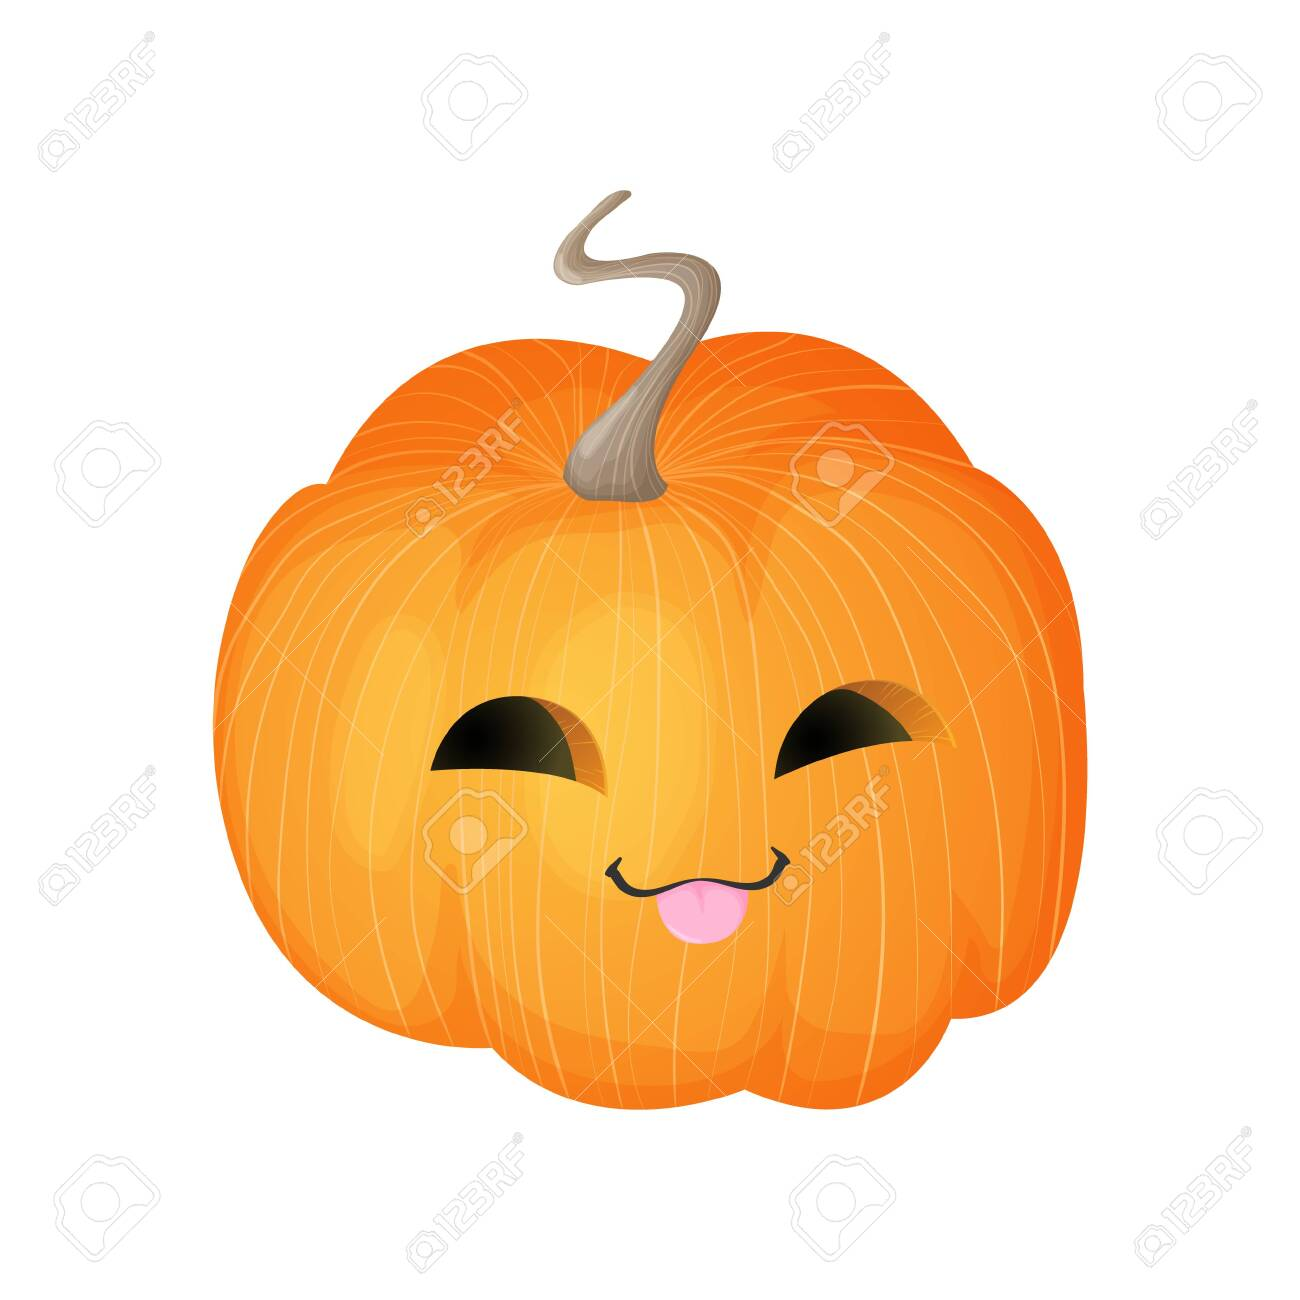 Cute Pumpkin With Happy Smiling Face Halloween Kawaii Mascot Royalty Free Cliparts Vectors And Stock Illustration Image 154390689